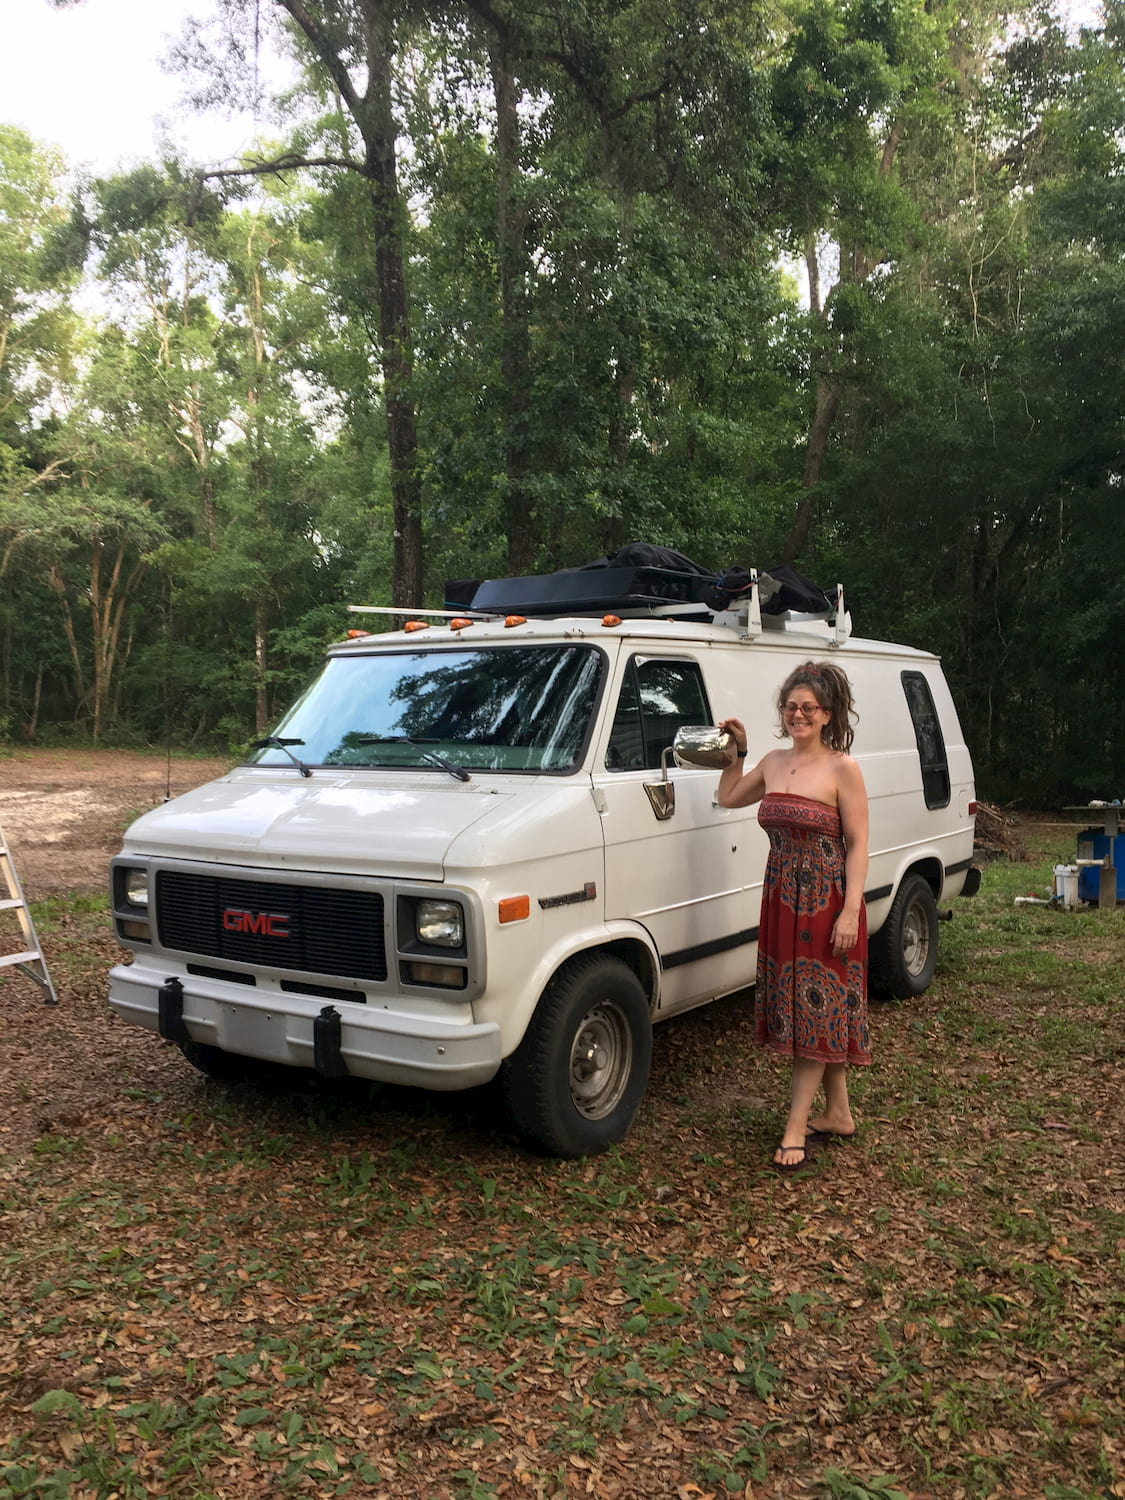 Suzy standing next to her van